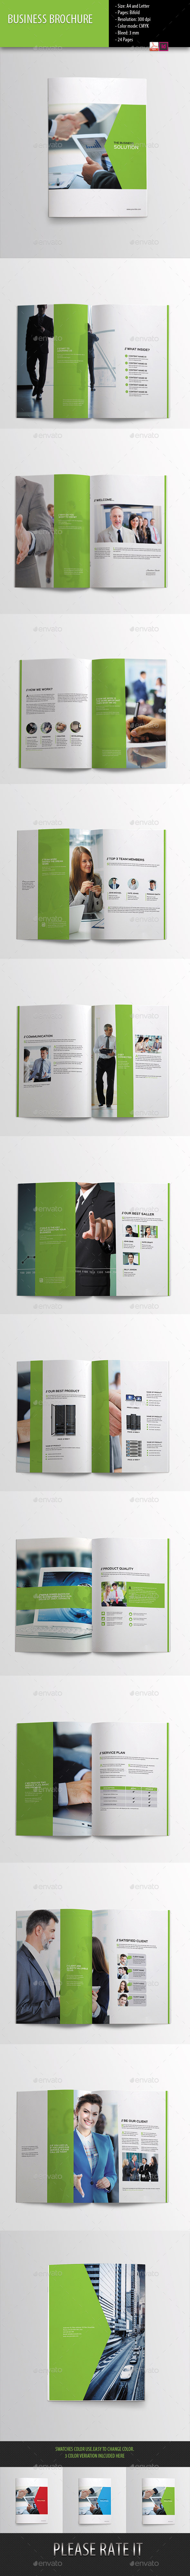 GraphicRiver Business Brochure-Indesign Template 9910158